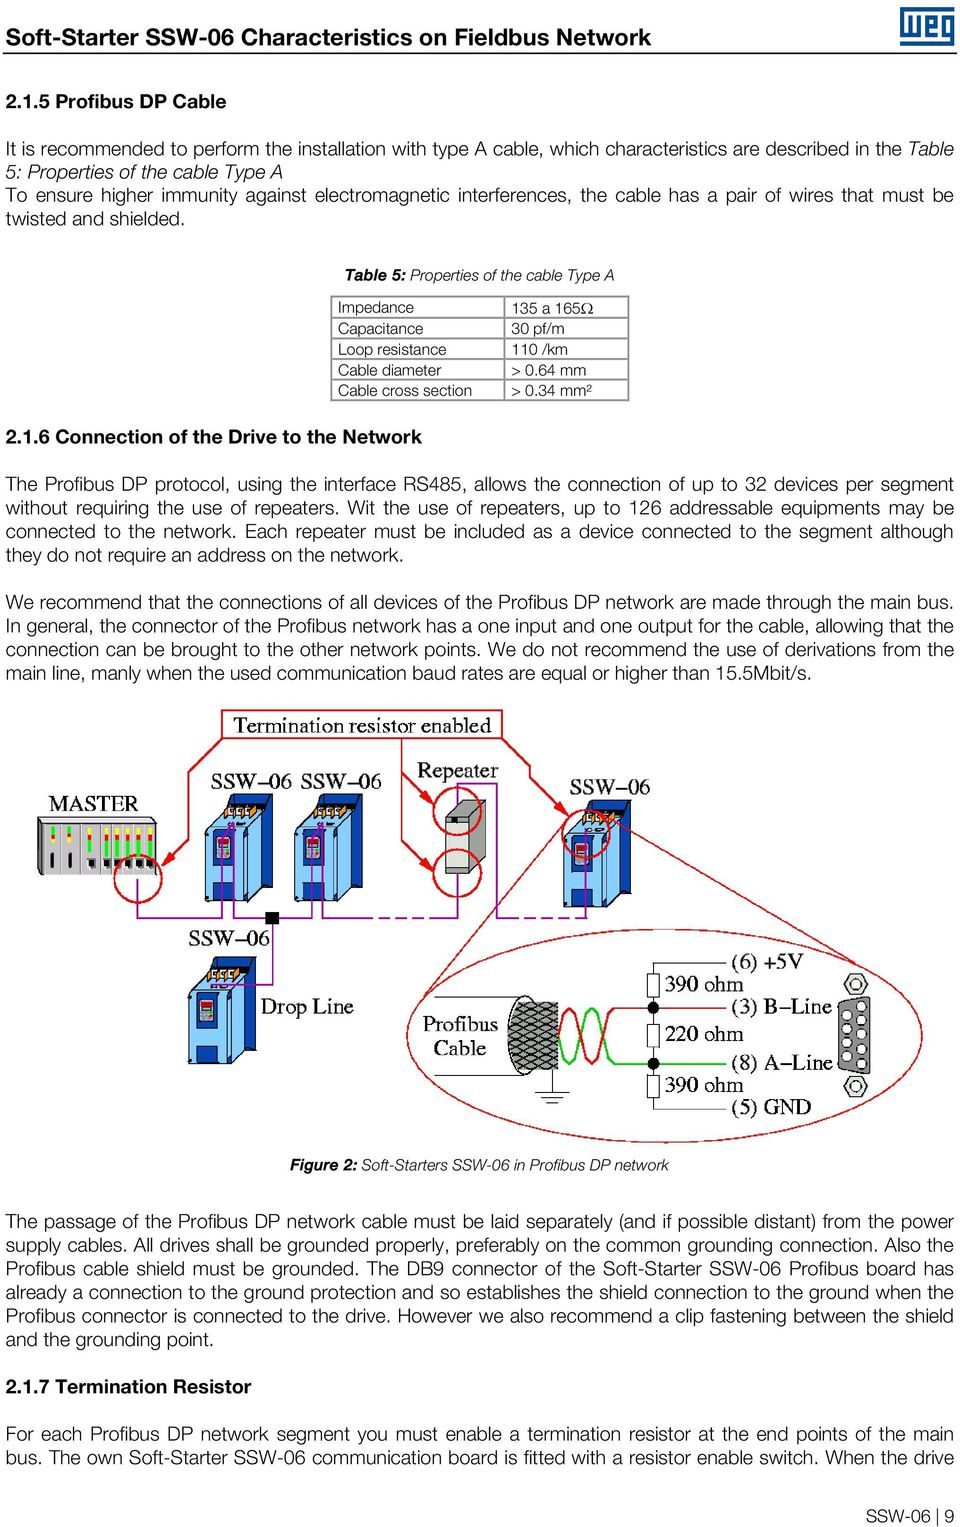 Soft Starter Ssw 06 V16x Profibus Dp Devicenet And Ethernet Ip Pdf Connector Wiring Diagram Against Electromagnetic Interferences The Cable Has A Pair Of Wires That Must Be Twisted